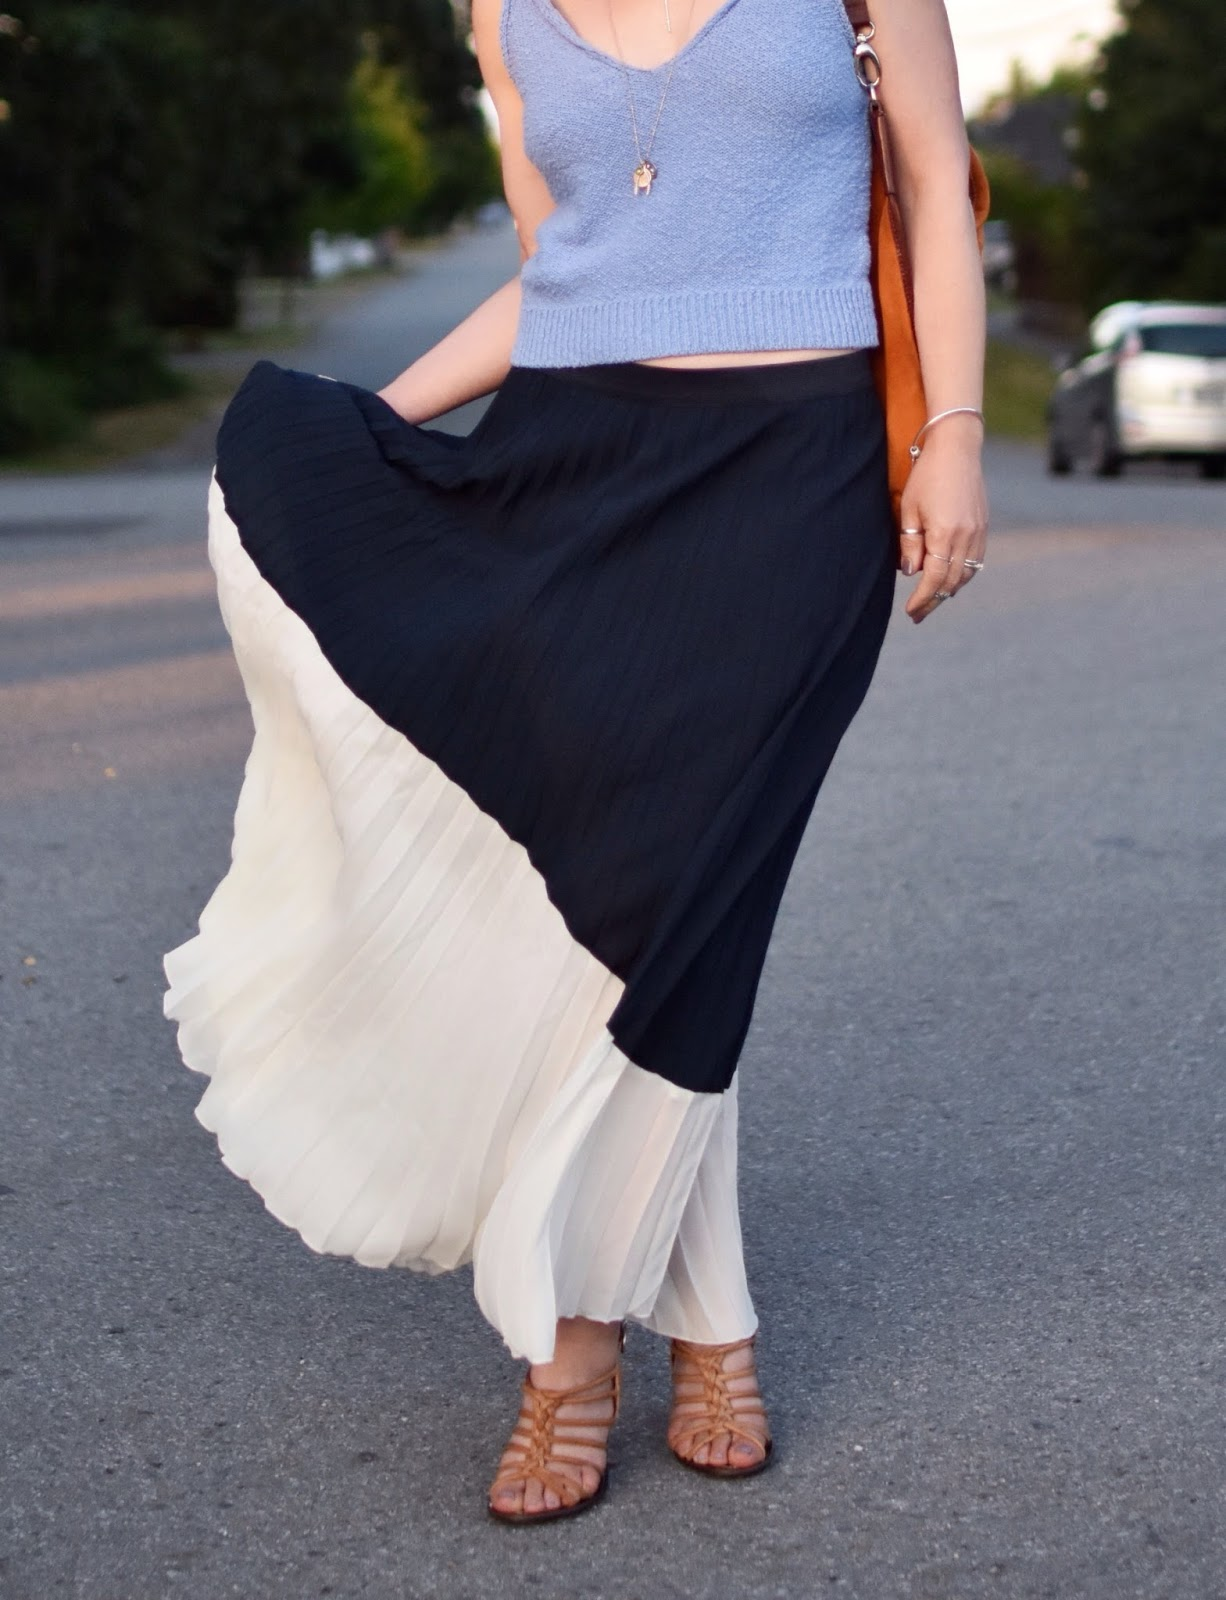 Monika Faulkner personal style inspiration - pleated asymmetrical skirt, strappy nude sandals